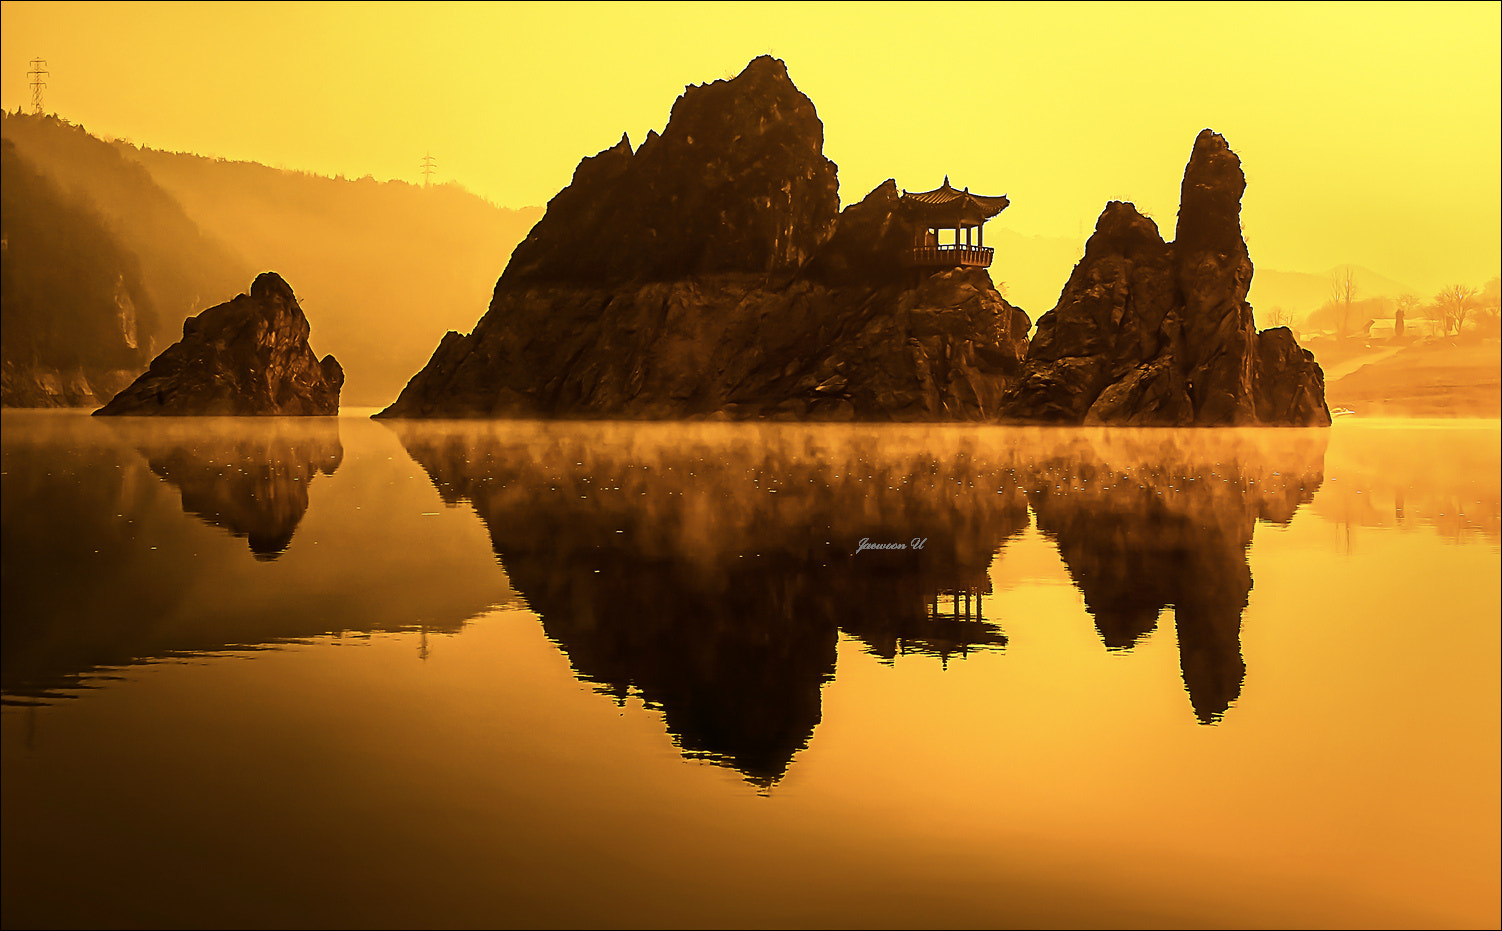 Photograph Morning by Jaewoon U on 500px